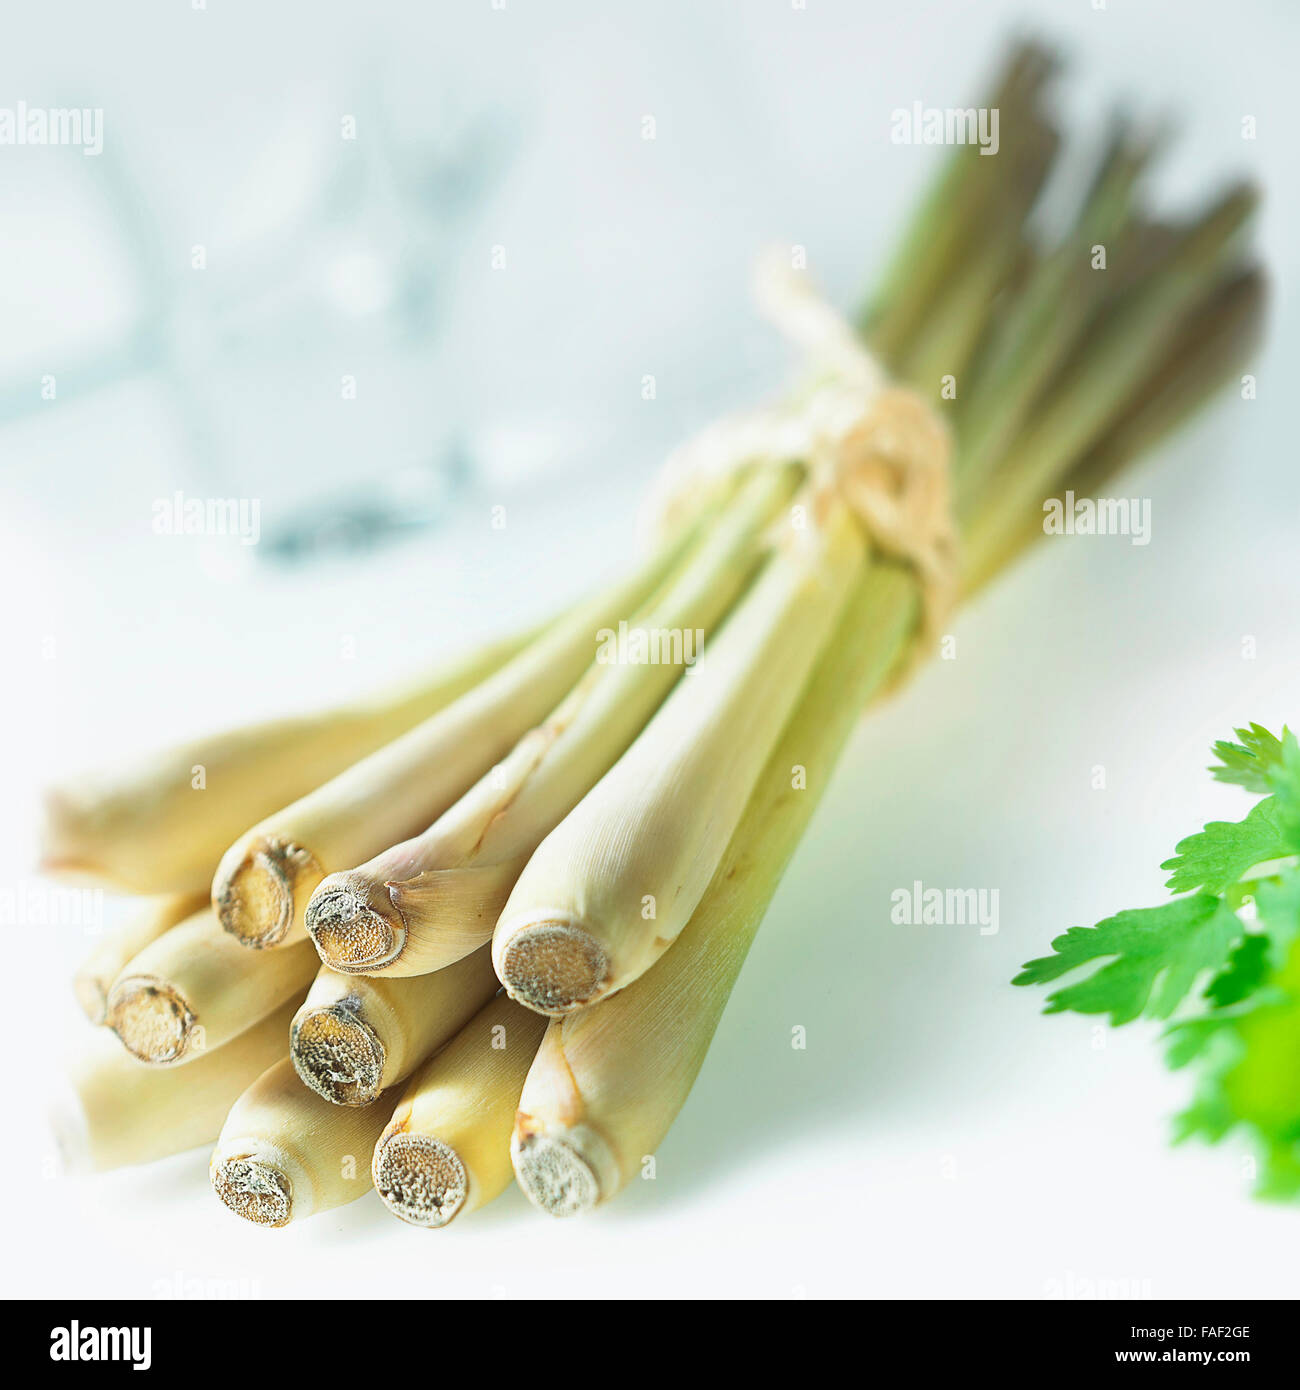 Bundle of fresh Lemon grass used for food seasoning and cooking. - Stock Image